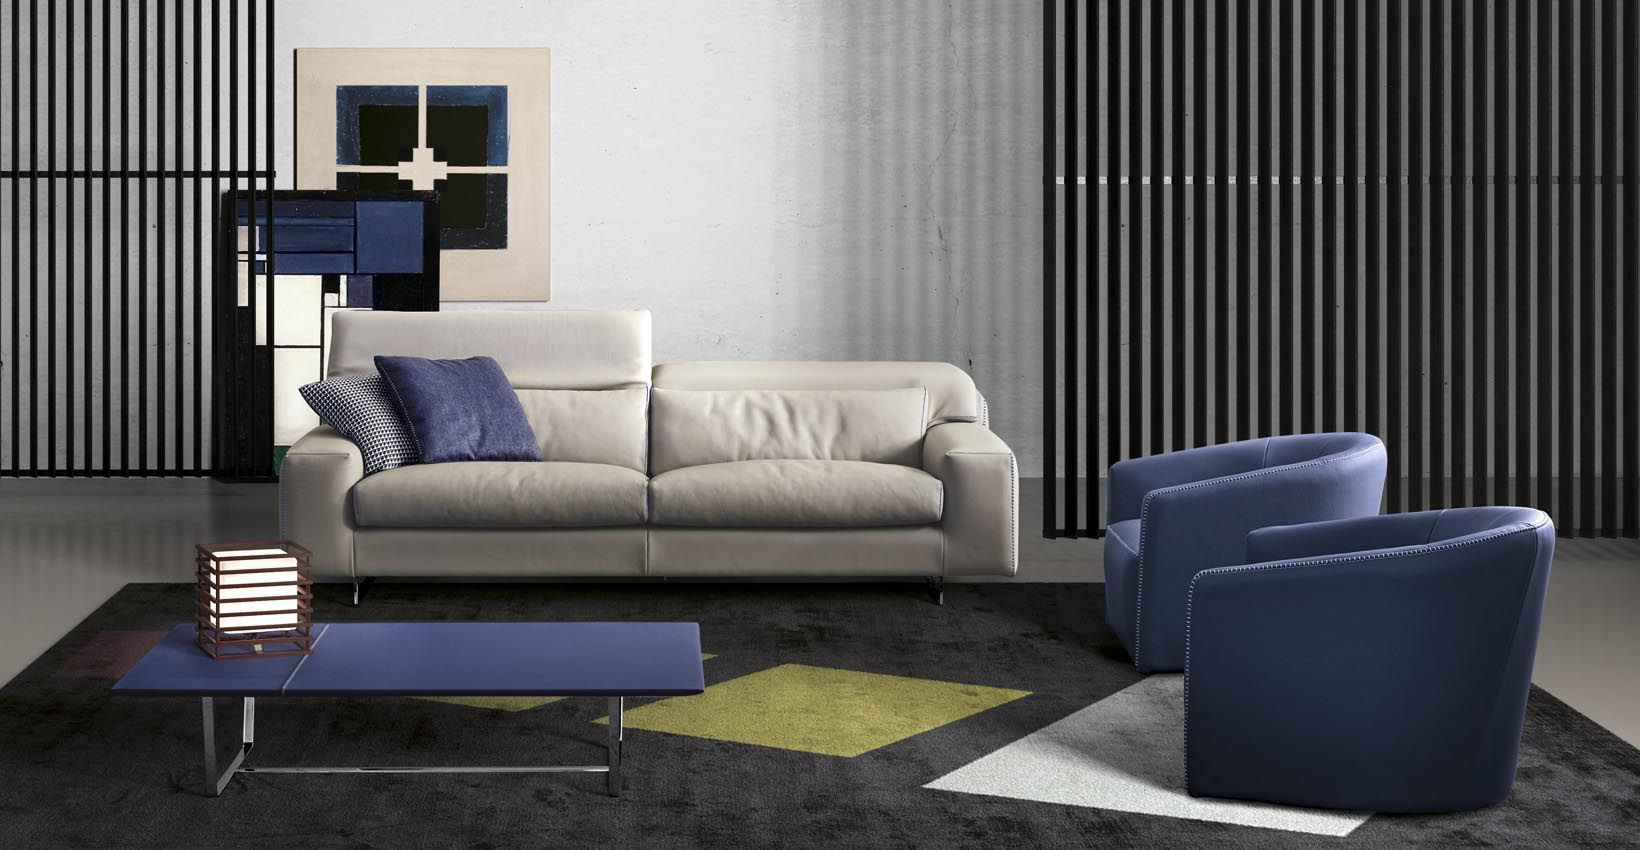 Pin By Meubles Richard On Meubles Design Contemporary Leather Sofa Sofa Design Furniture